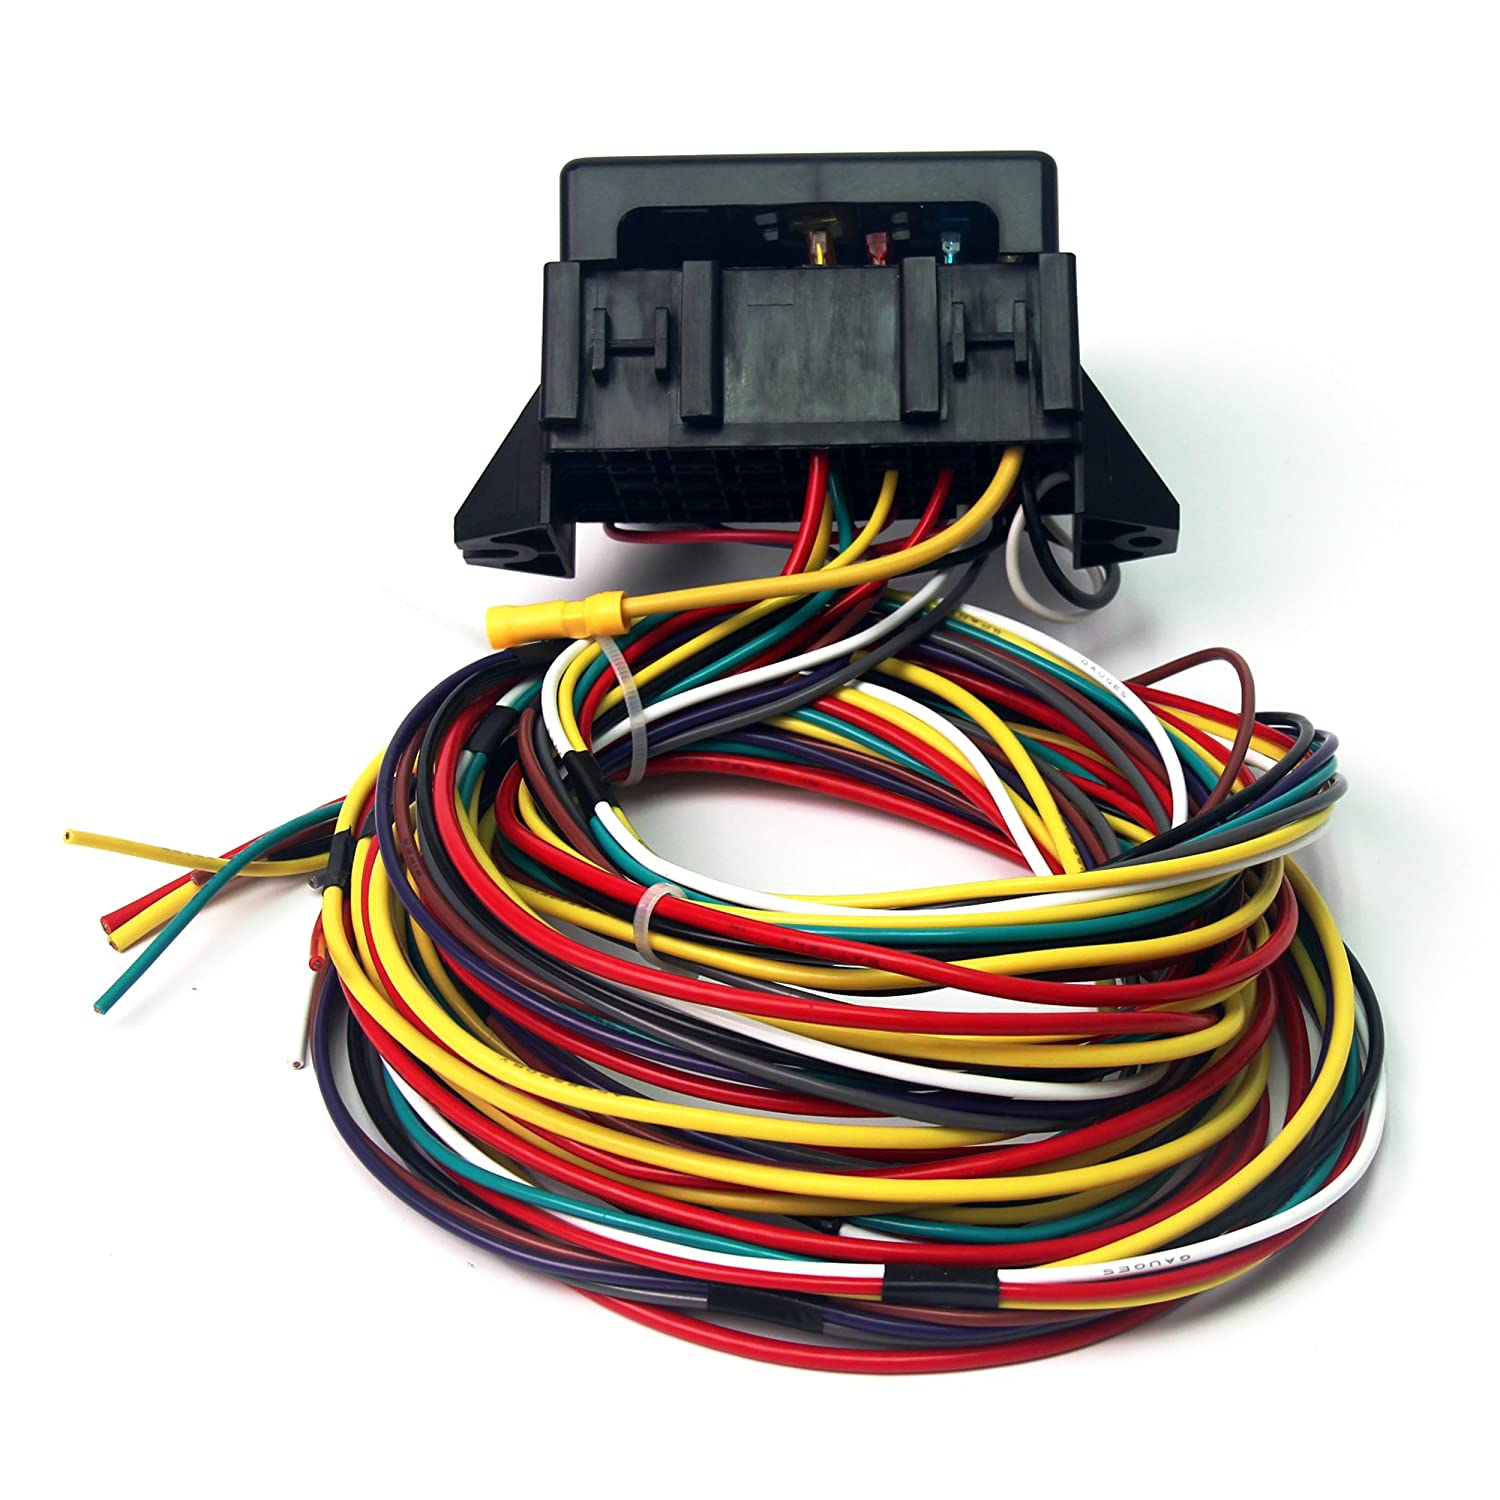 Amazon.com: Wisamic 10 Circuit Basic Wiring Harness Fuse Box Street Hot Rat  Rod Wiring Box Car Truck 12V: Automotive